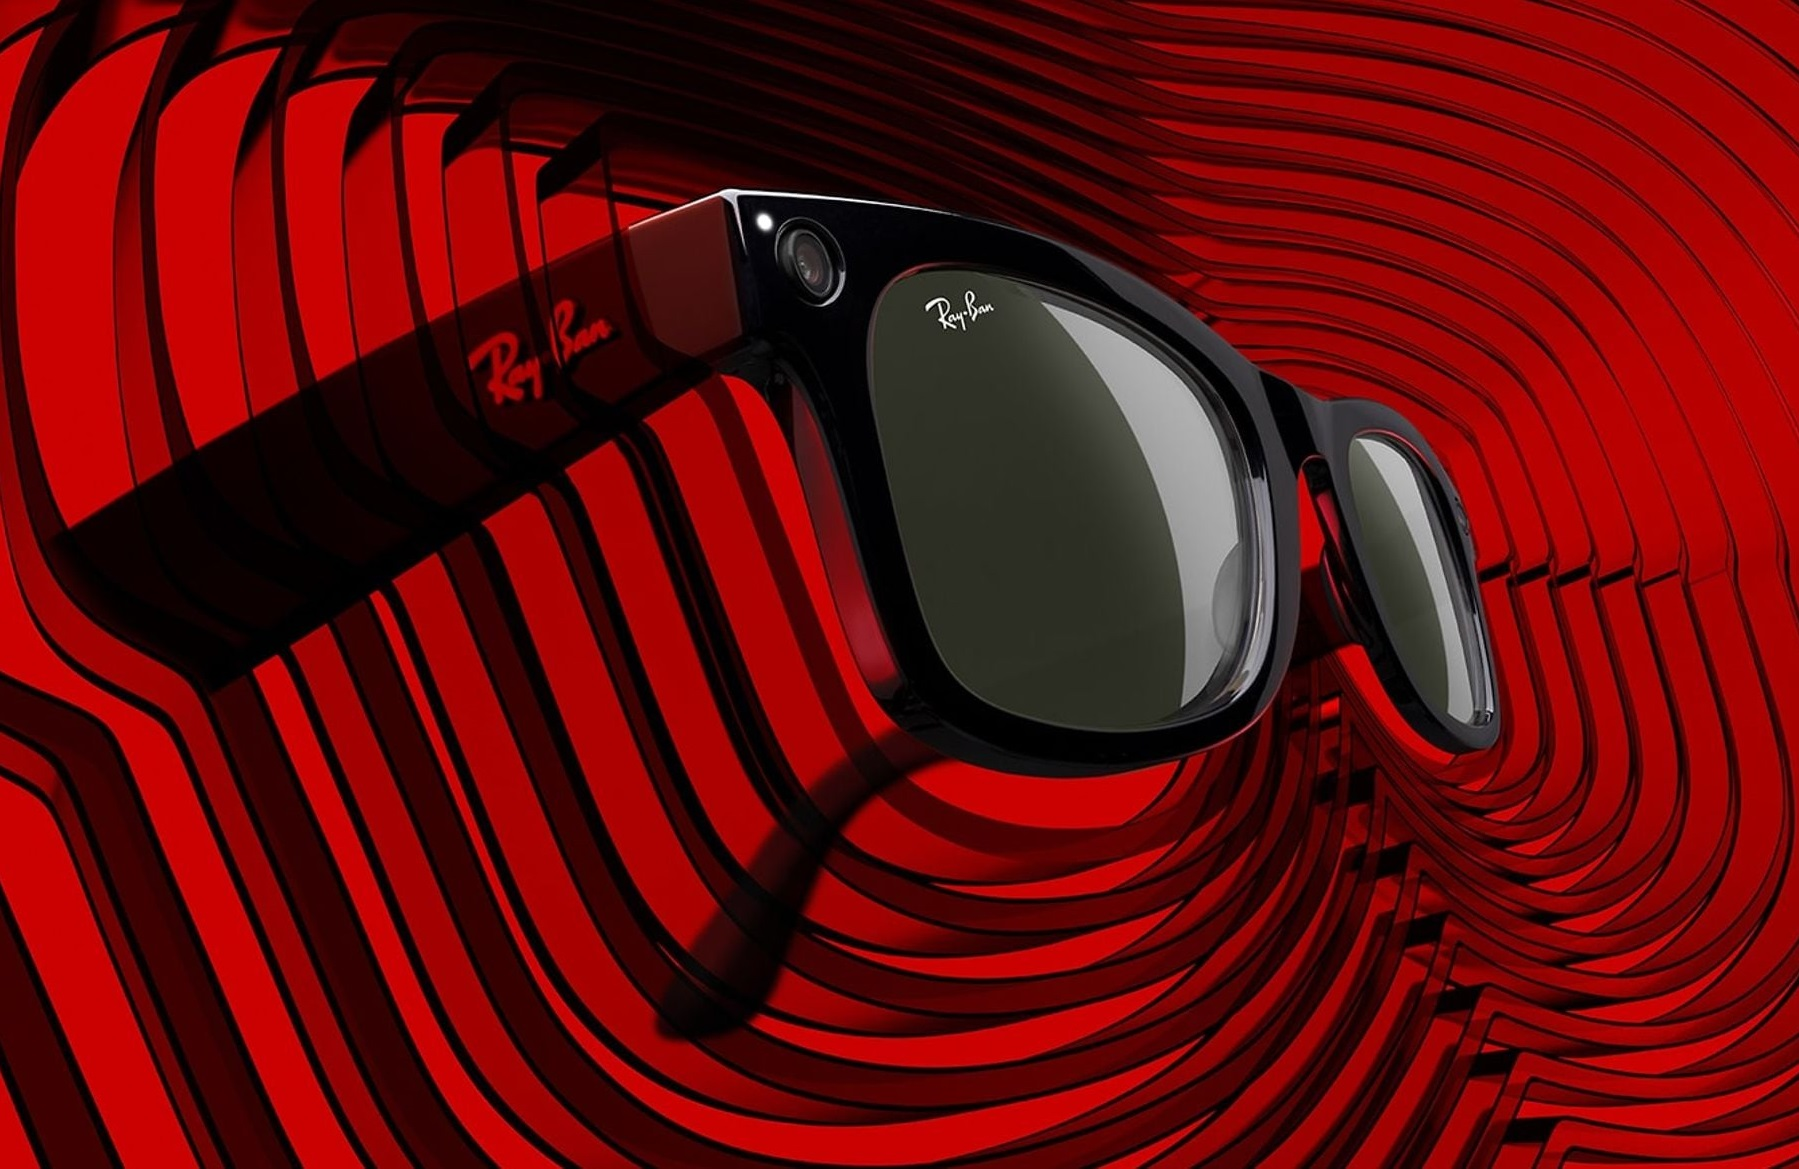 Facebook, Ray-Ban to unveil smart glasses on September 9